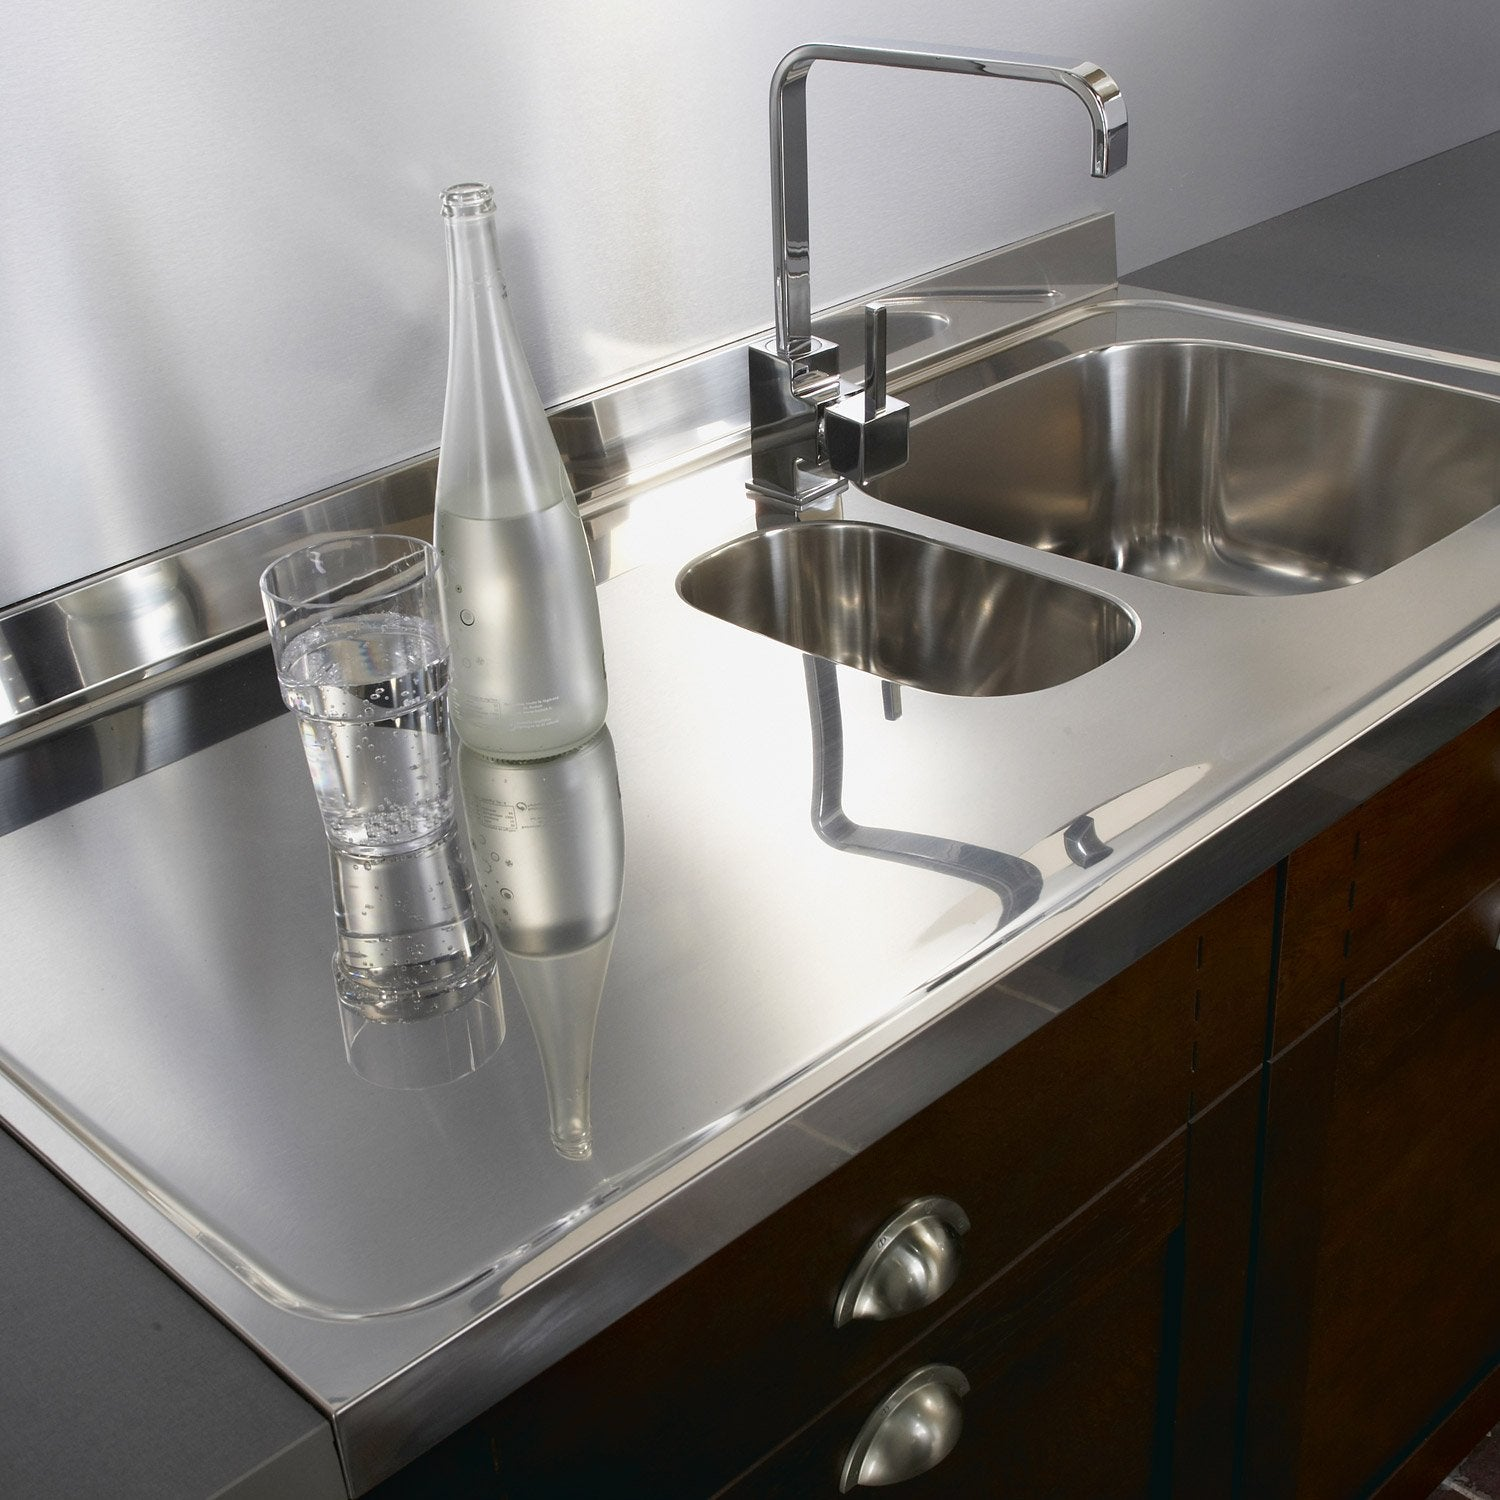 Plan vier inox brillant x cm mm leroy for Eviers en inox cuisine